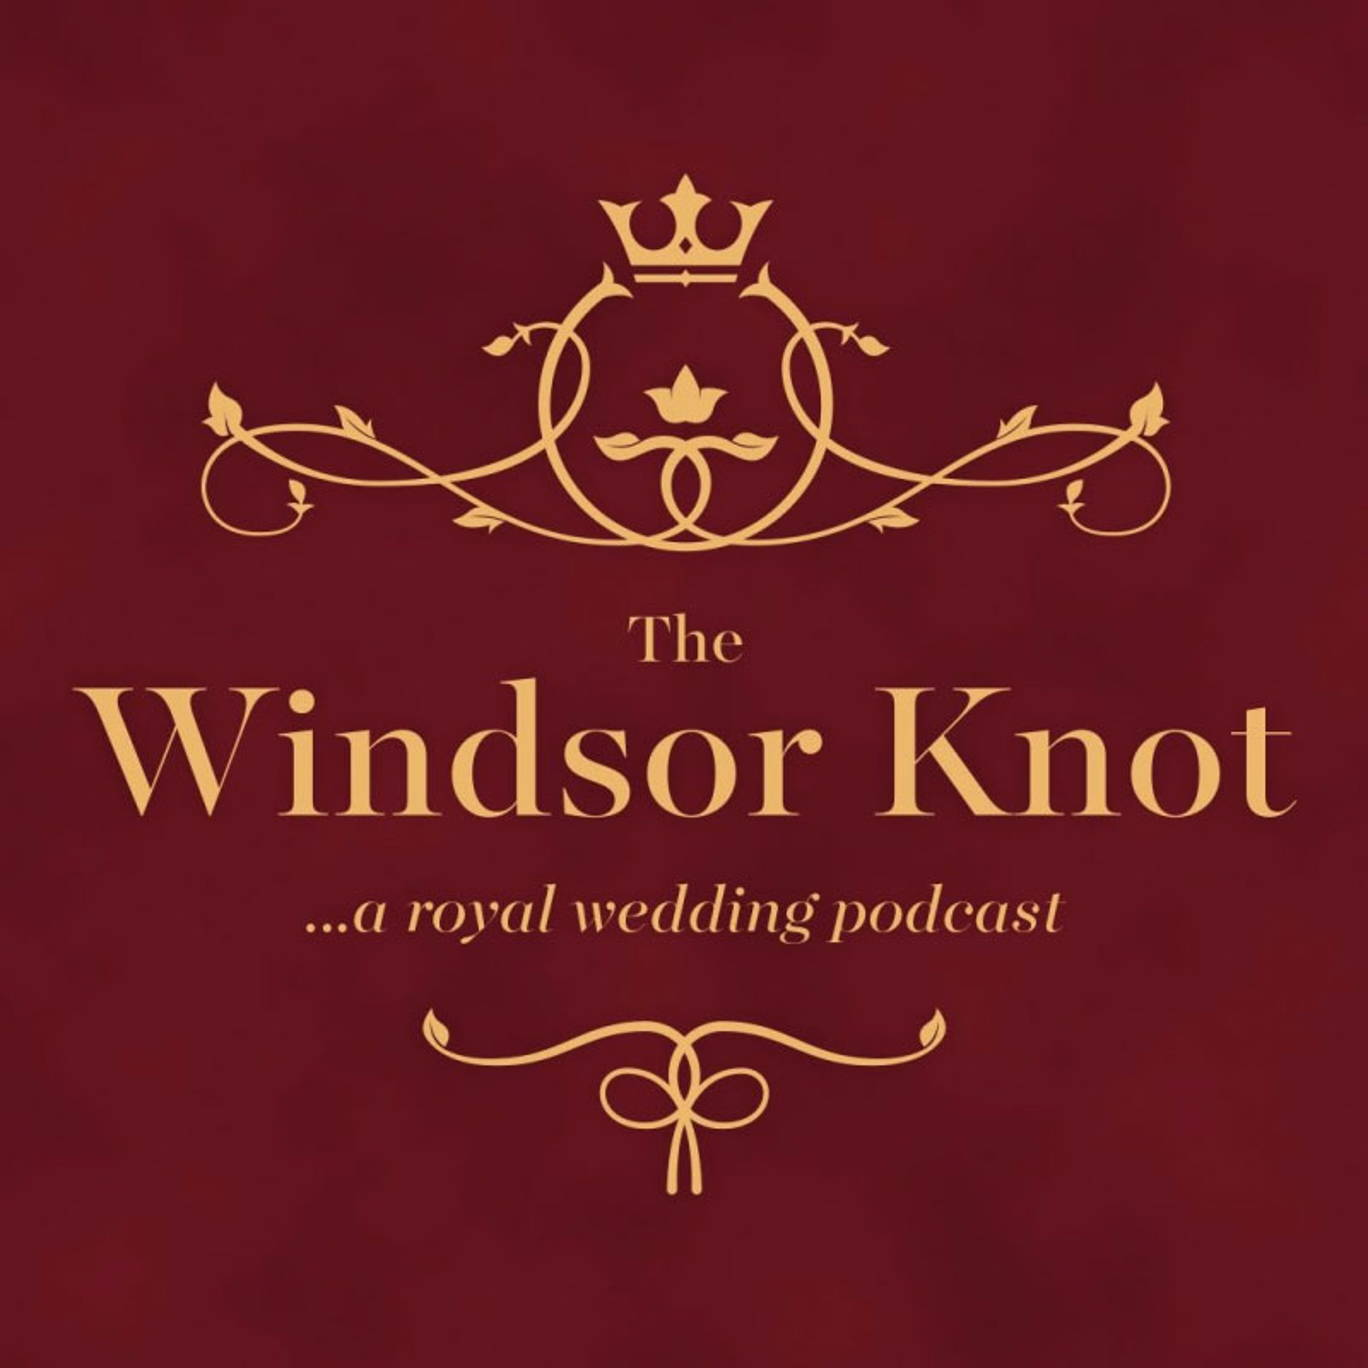 The artwork for the The Windsor Knot: A Royal Wedding Podcast podcast.